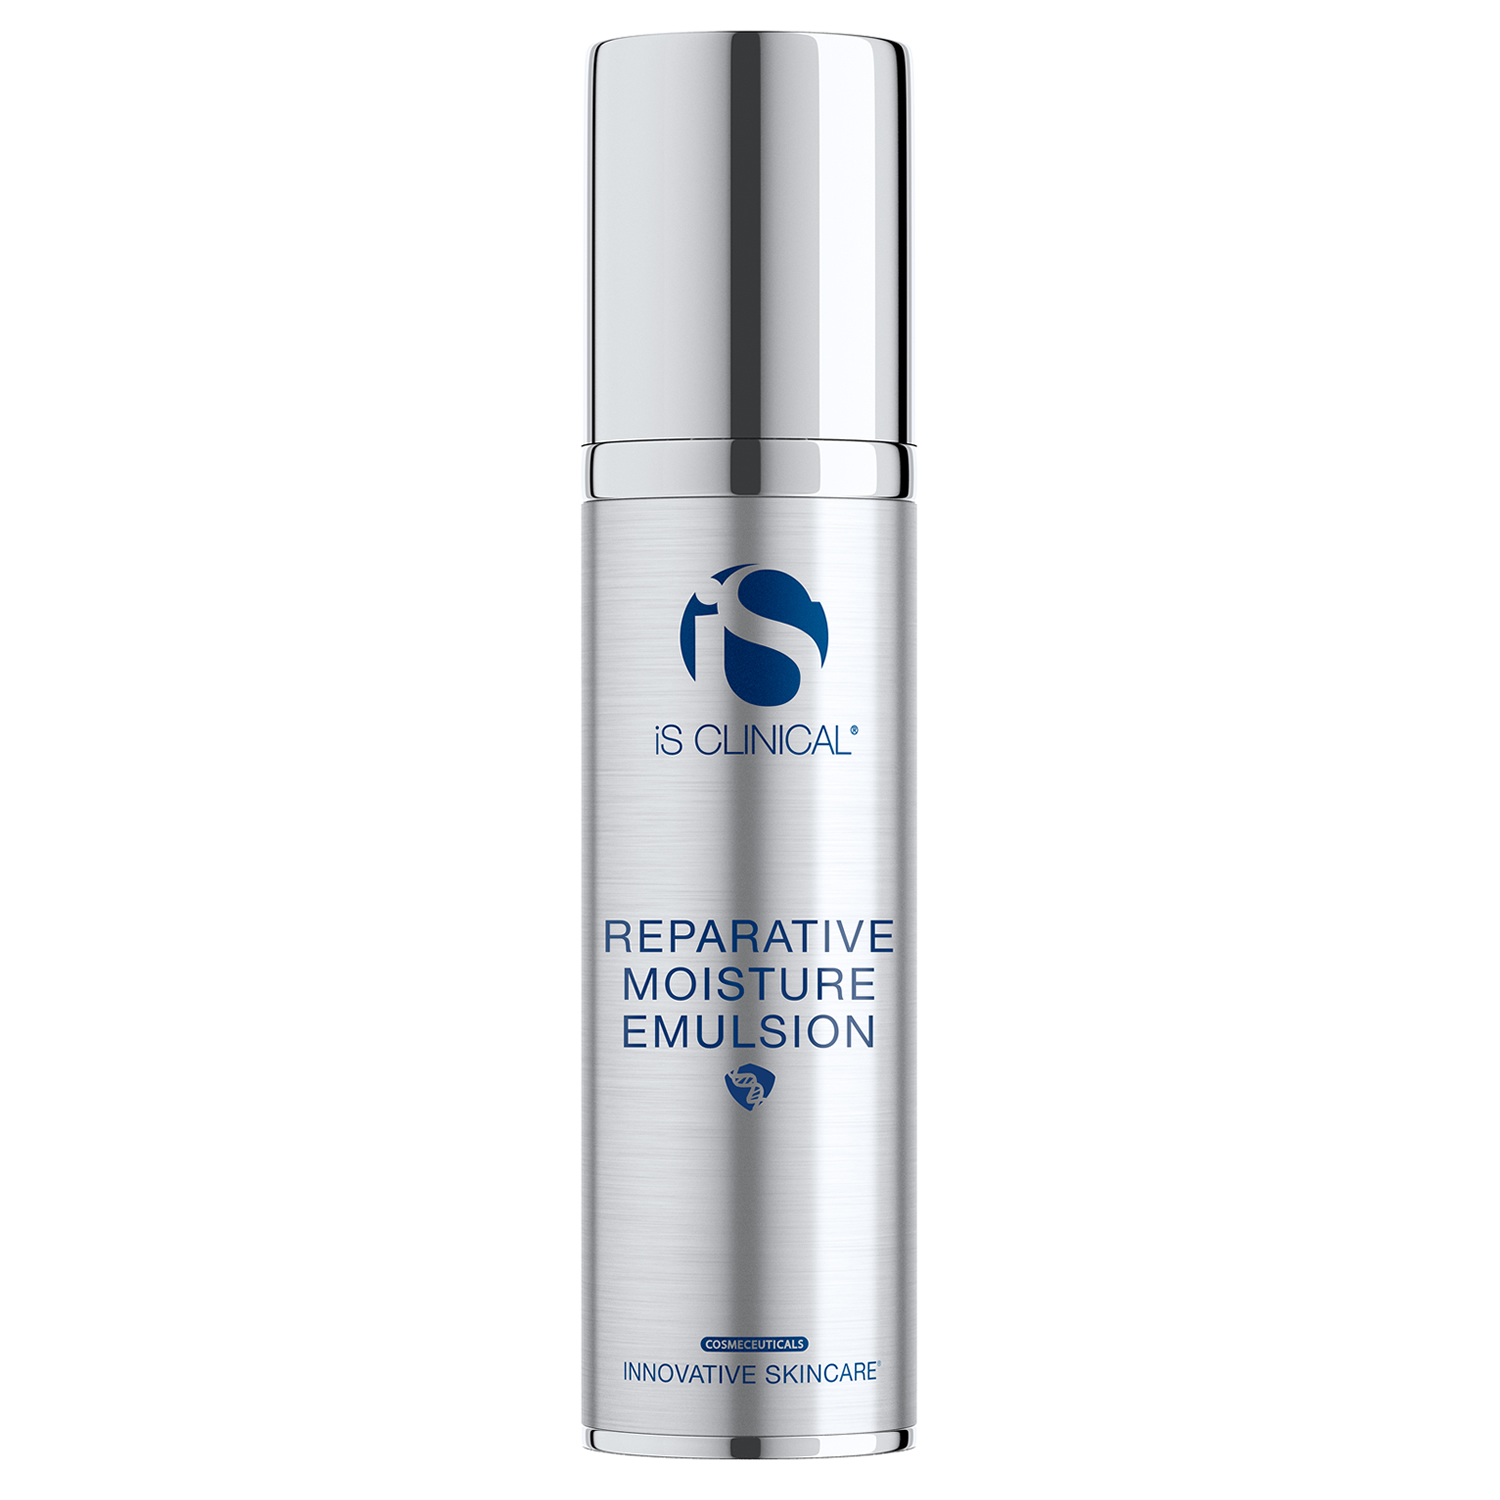 iS Clinical REPARATIVE MOISTURE EMULSION (50 g / 1.7 oz)